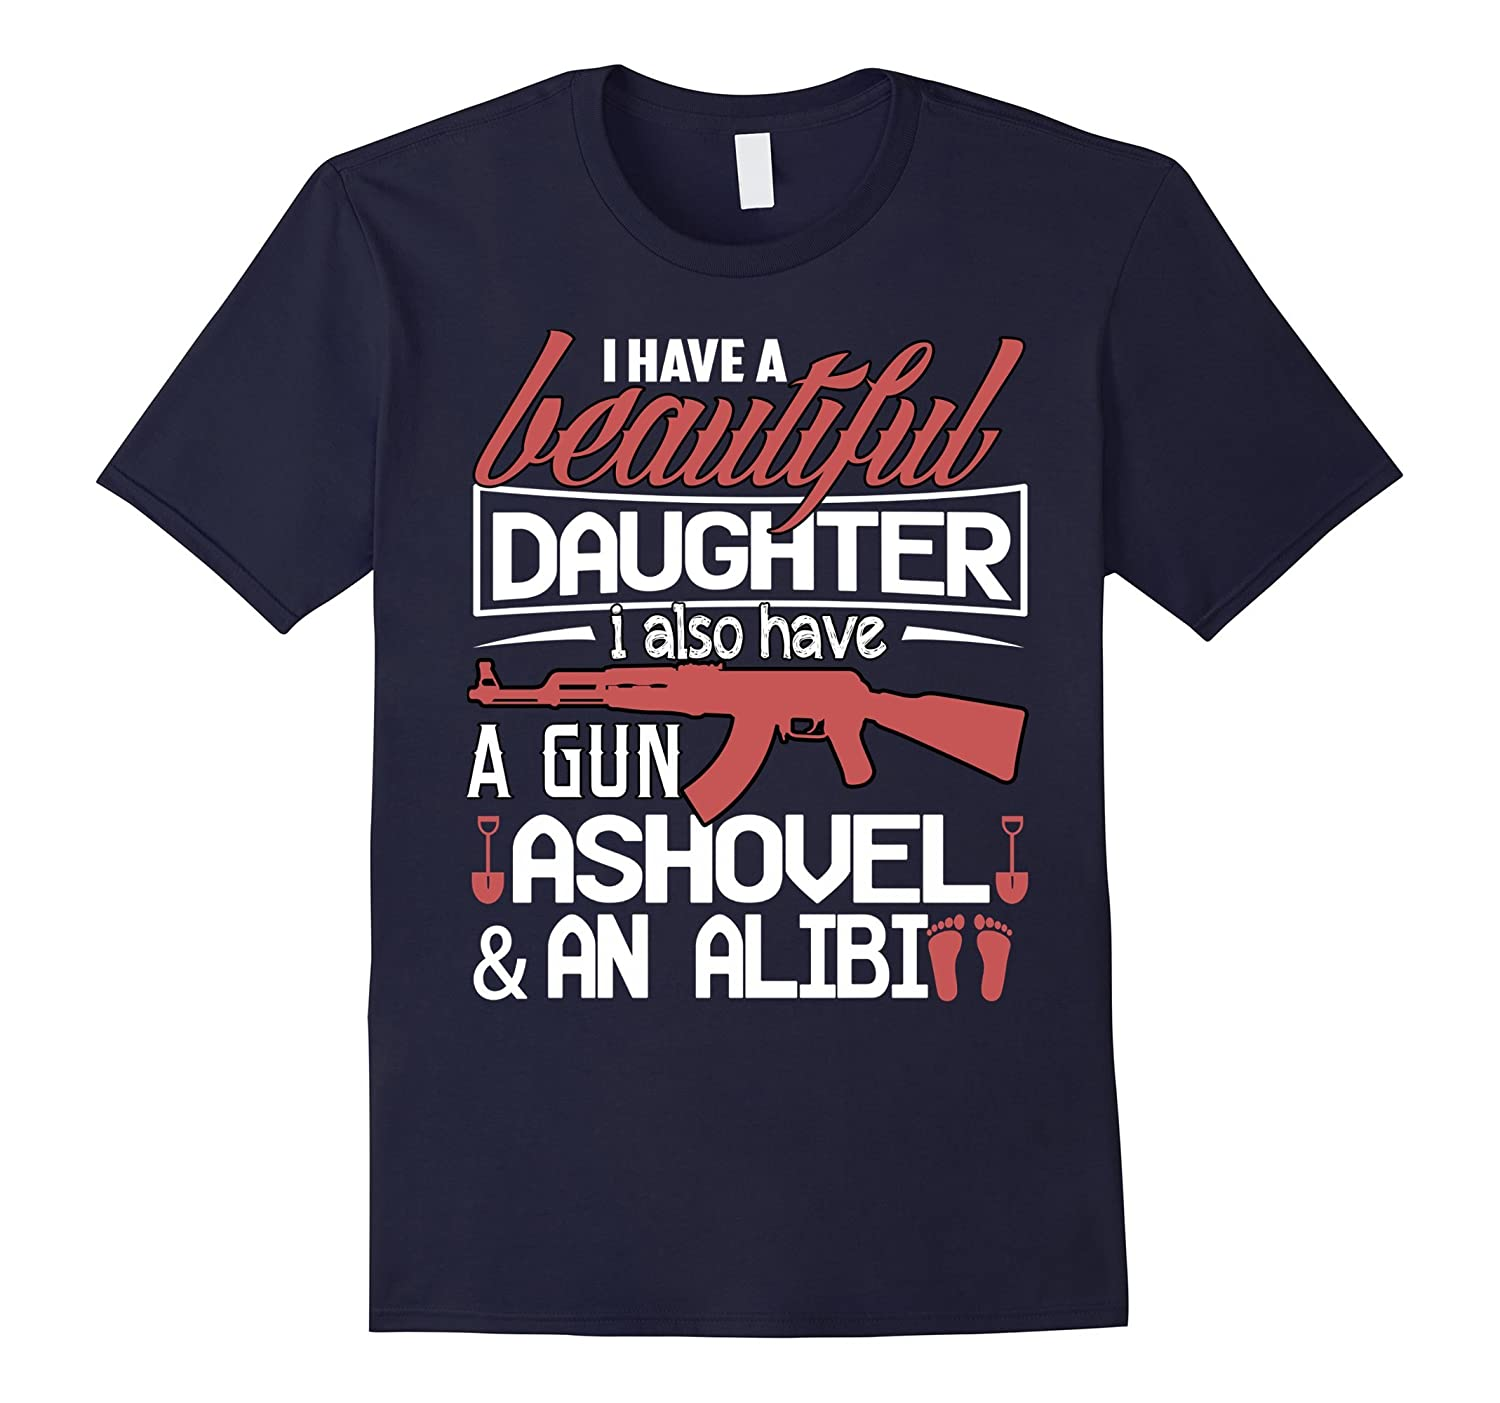 I Have A Veteran Daughter T Shirt I Also Have A Gun T Shirt-TJ